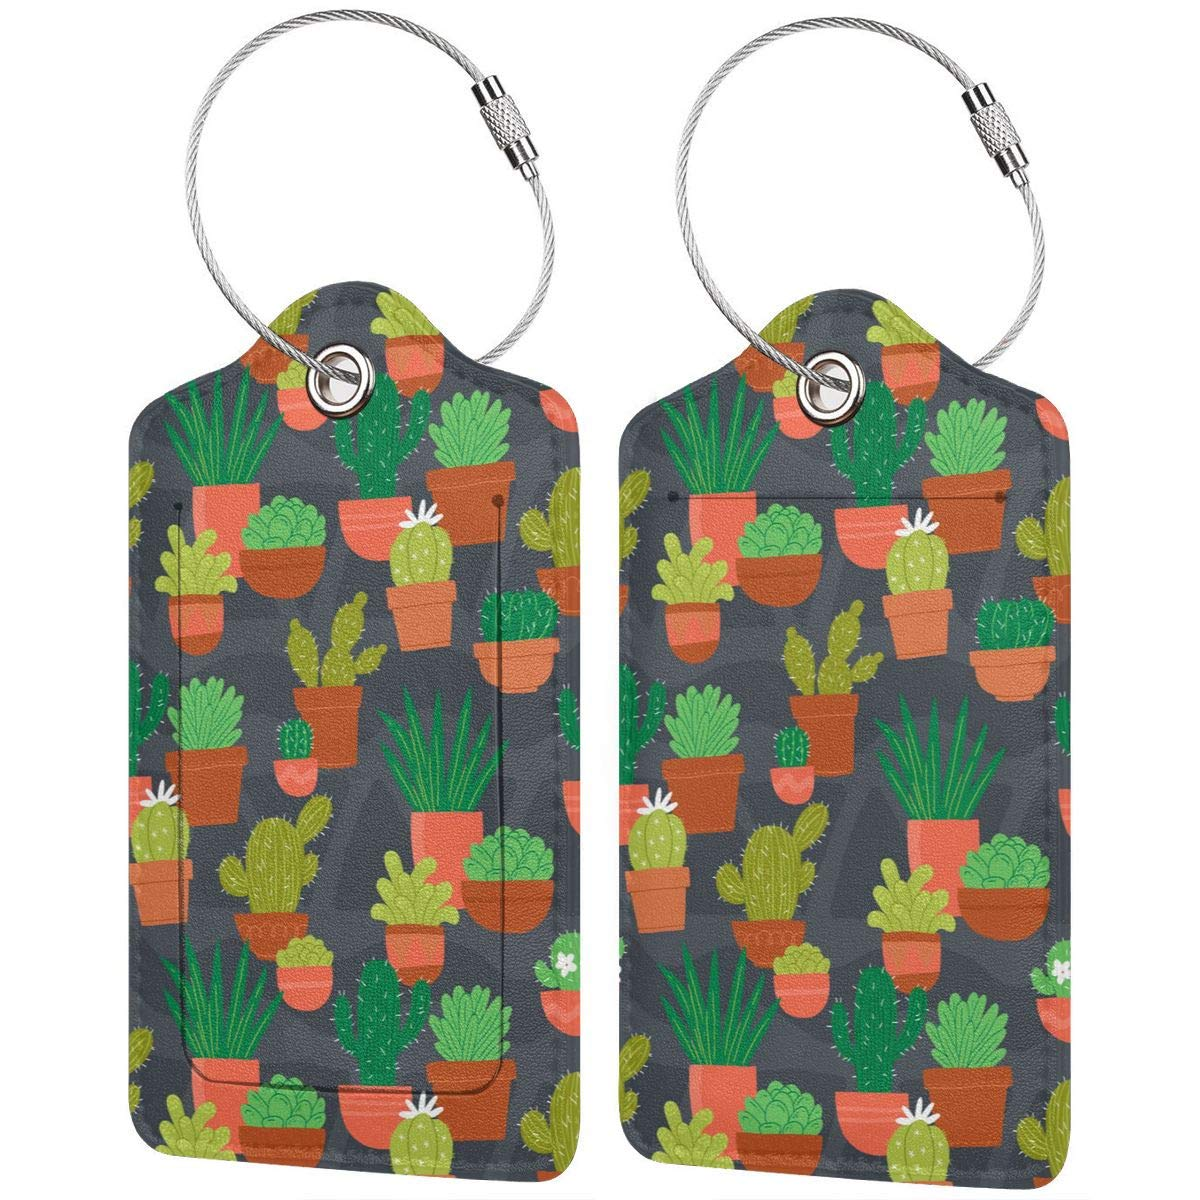 Leather Luggage Tags Full Privacy Cover and Stainless Steel Loop 1 2 4 Pcs Set Key Tags for Cruise Ships Honeymoon Gift Cactus Flower Pot 2.7 x 4.6 Blank Tag